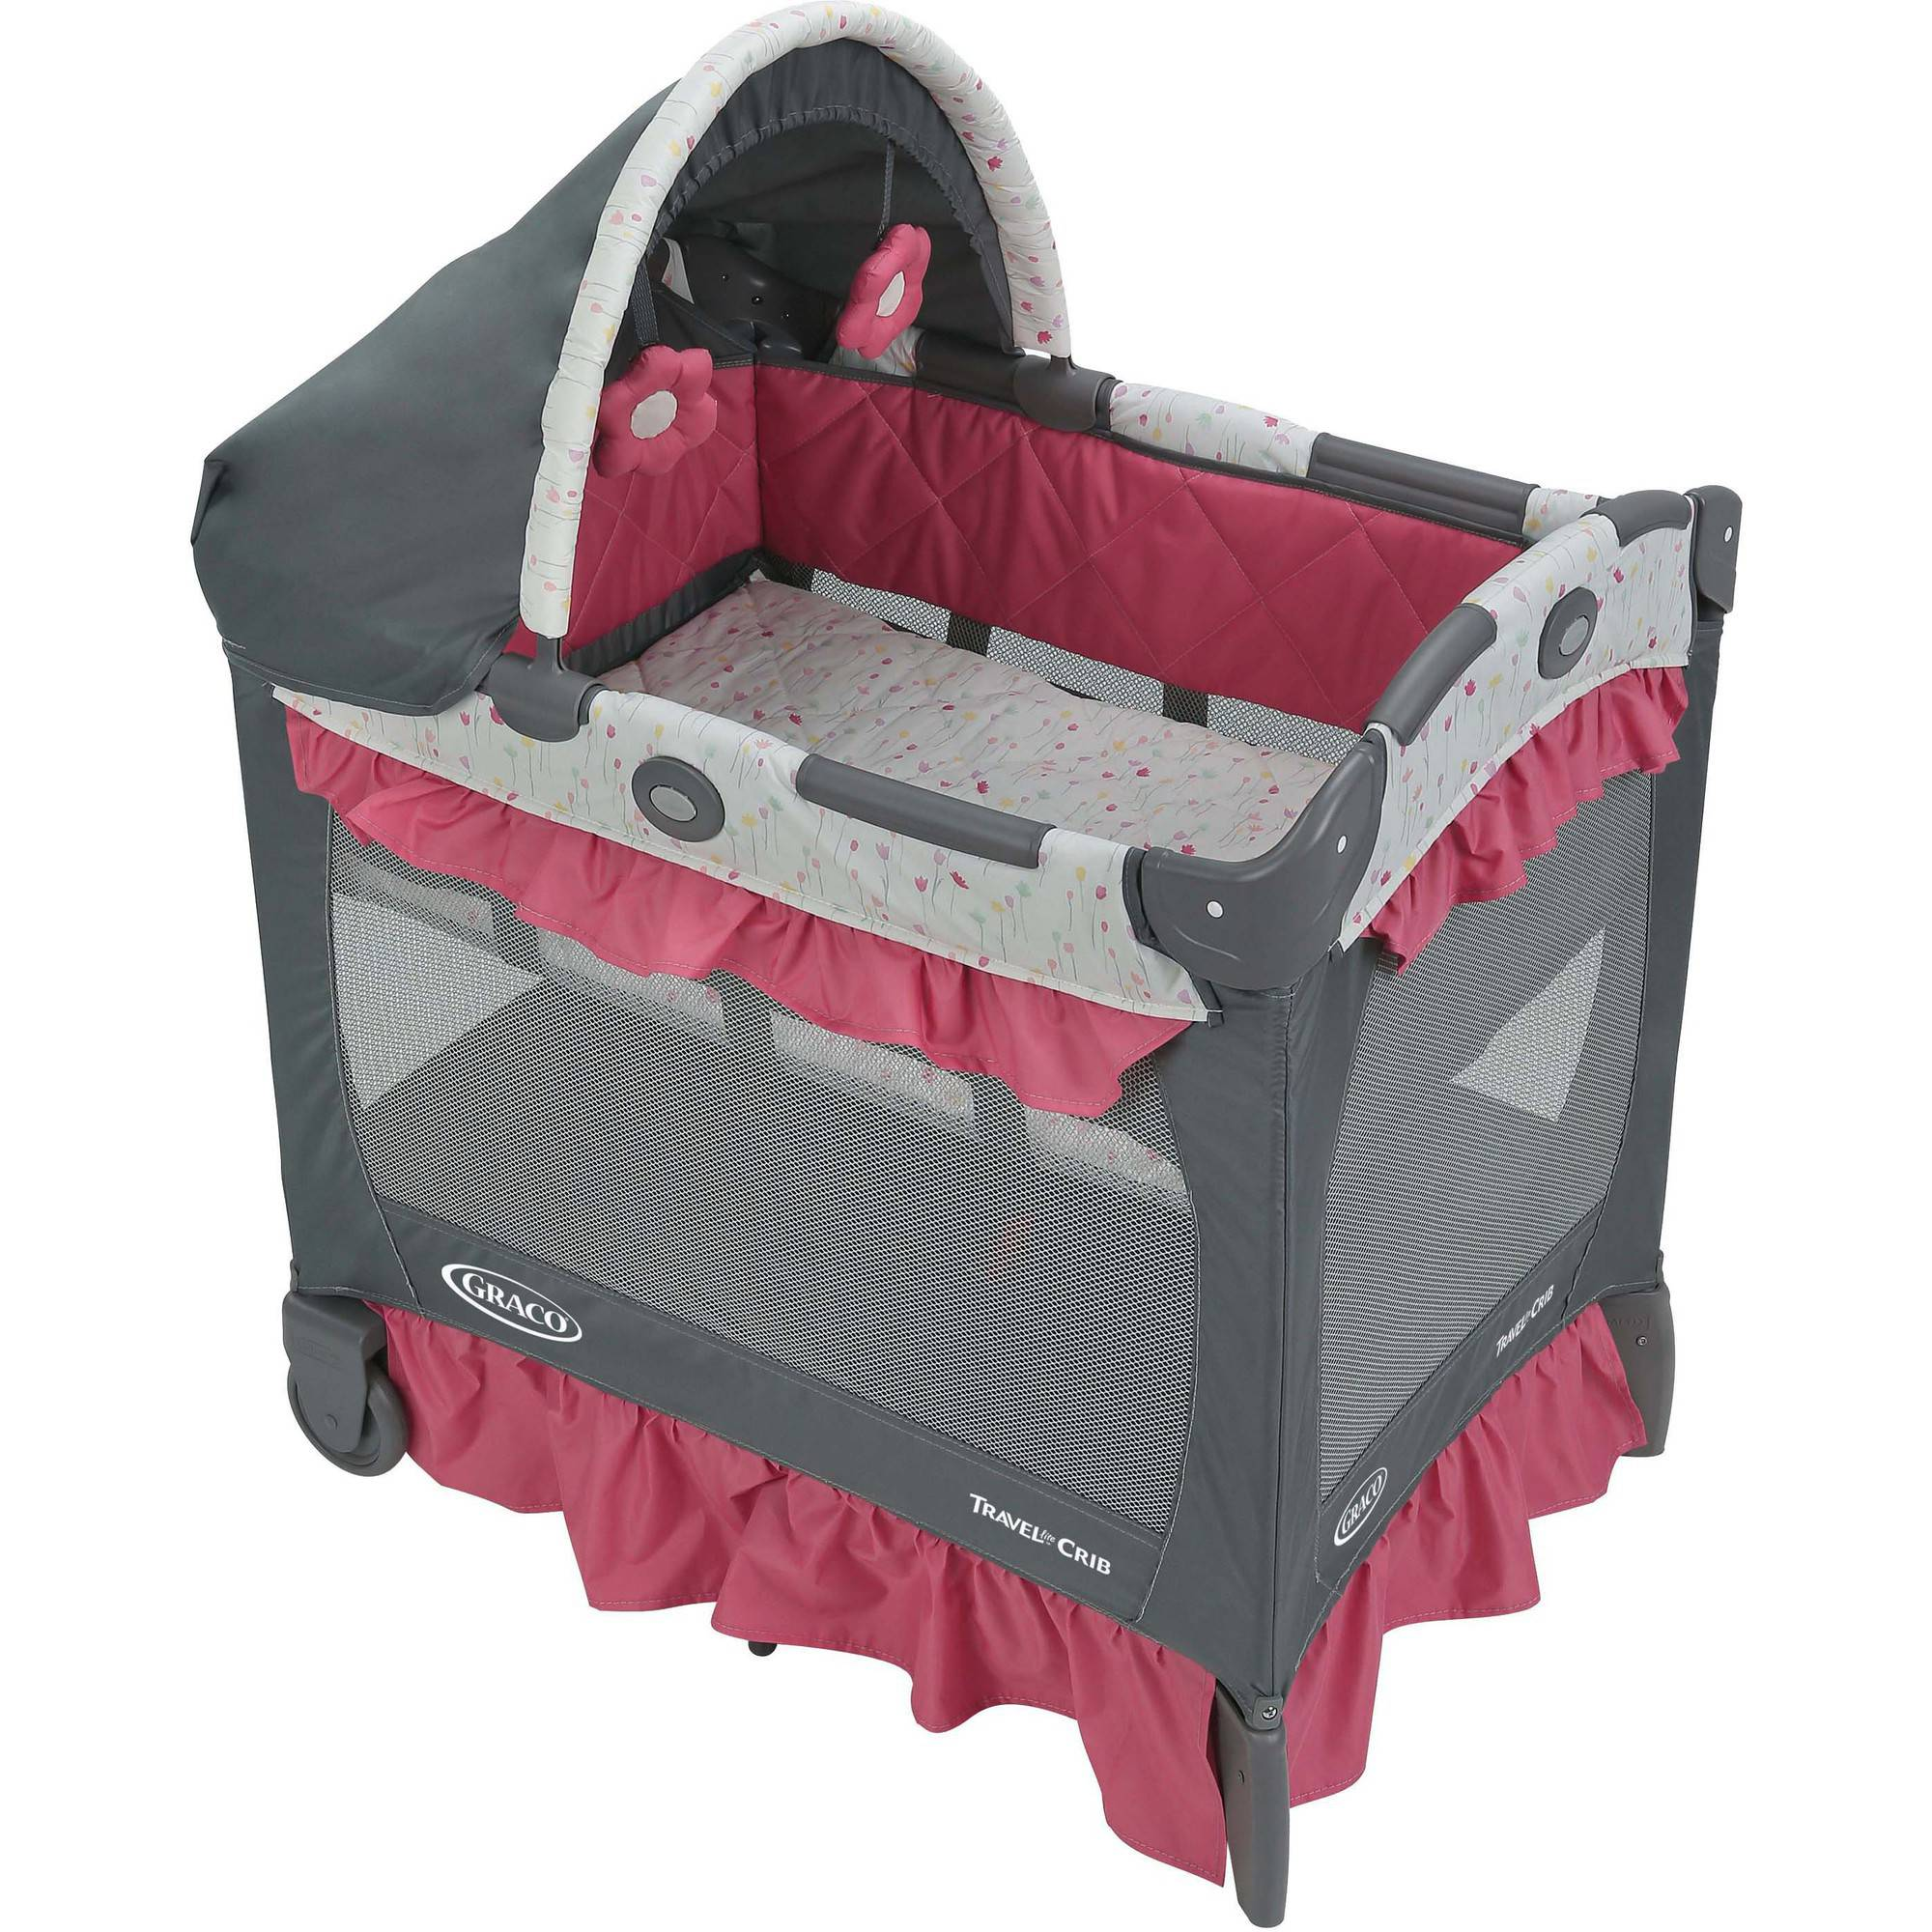 Graco pack n play travel lite crib portable baby playard crib alma walmart com